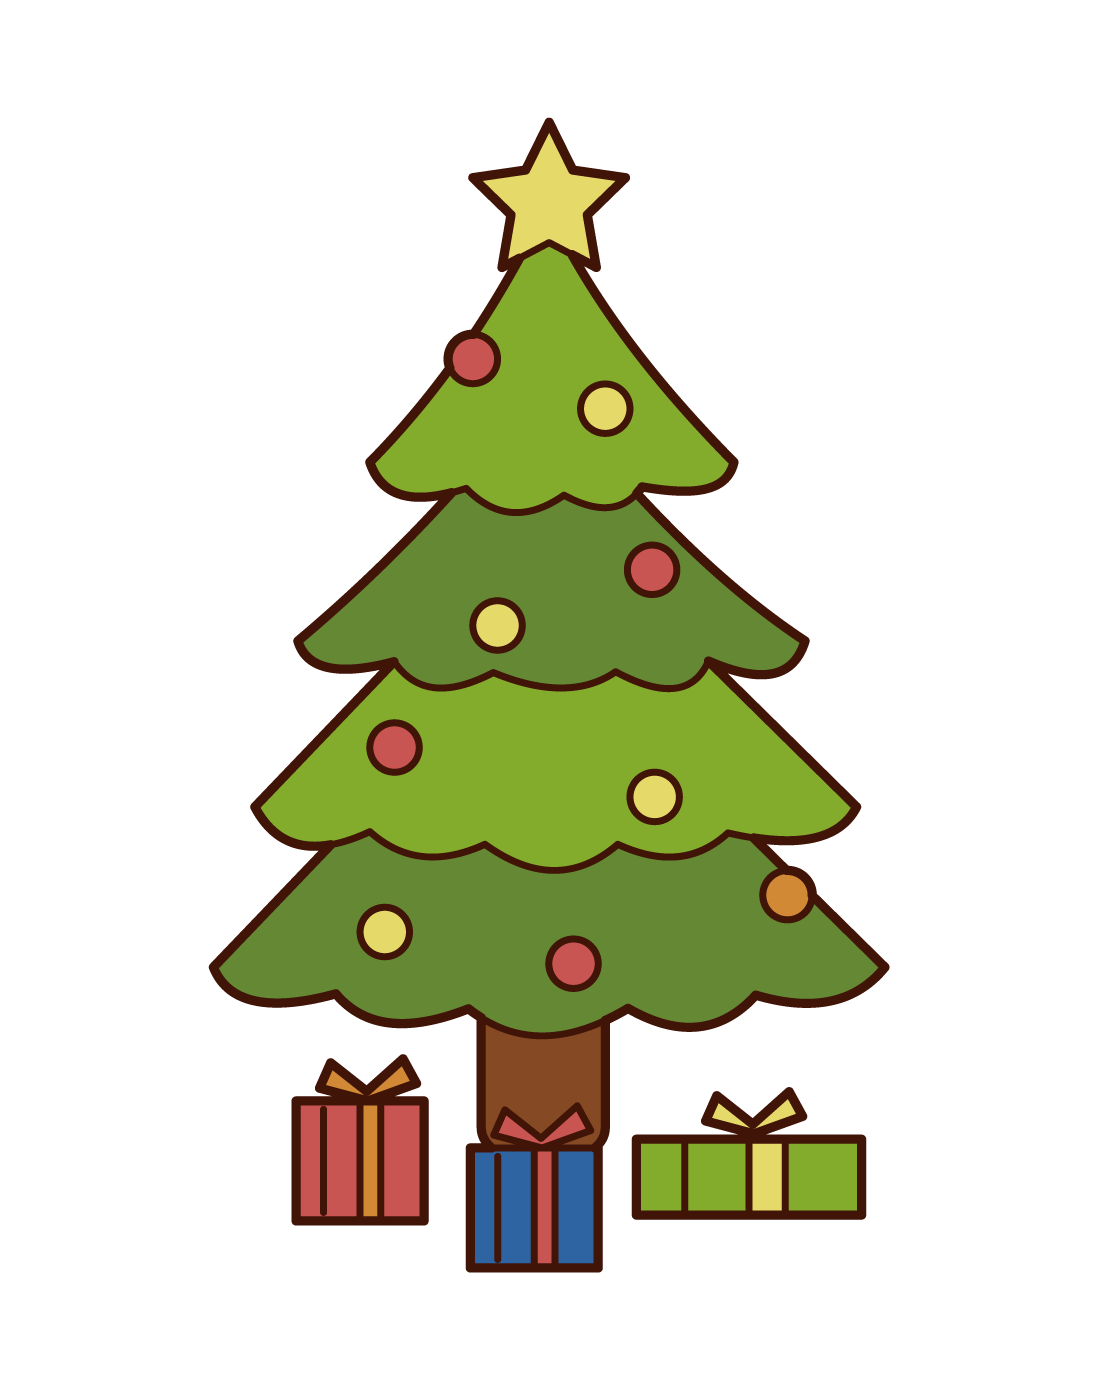 Illustrations of Christmas trees